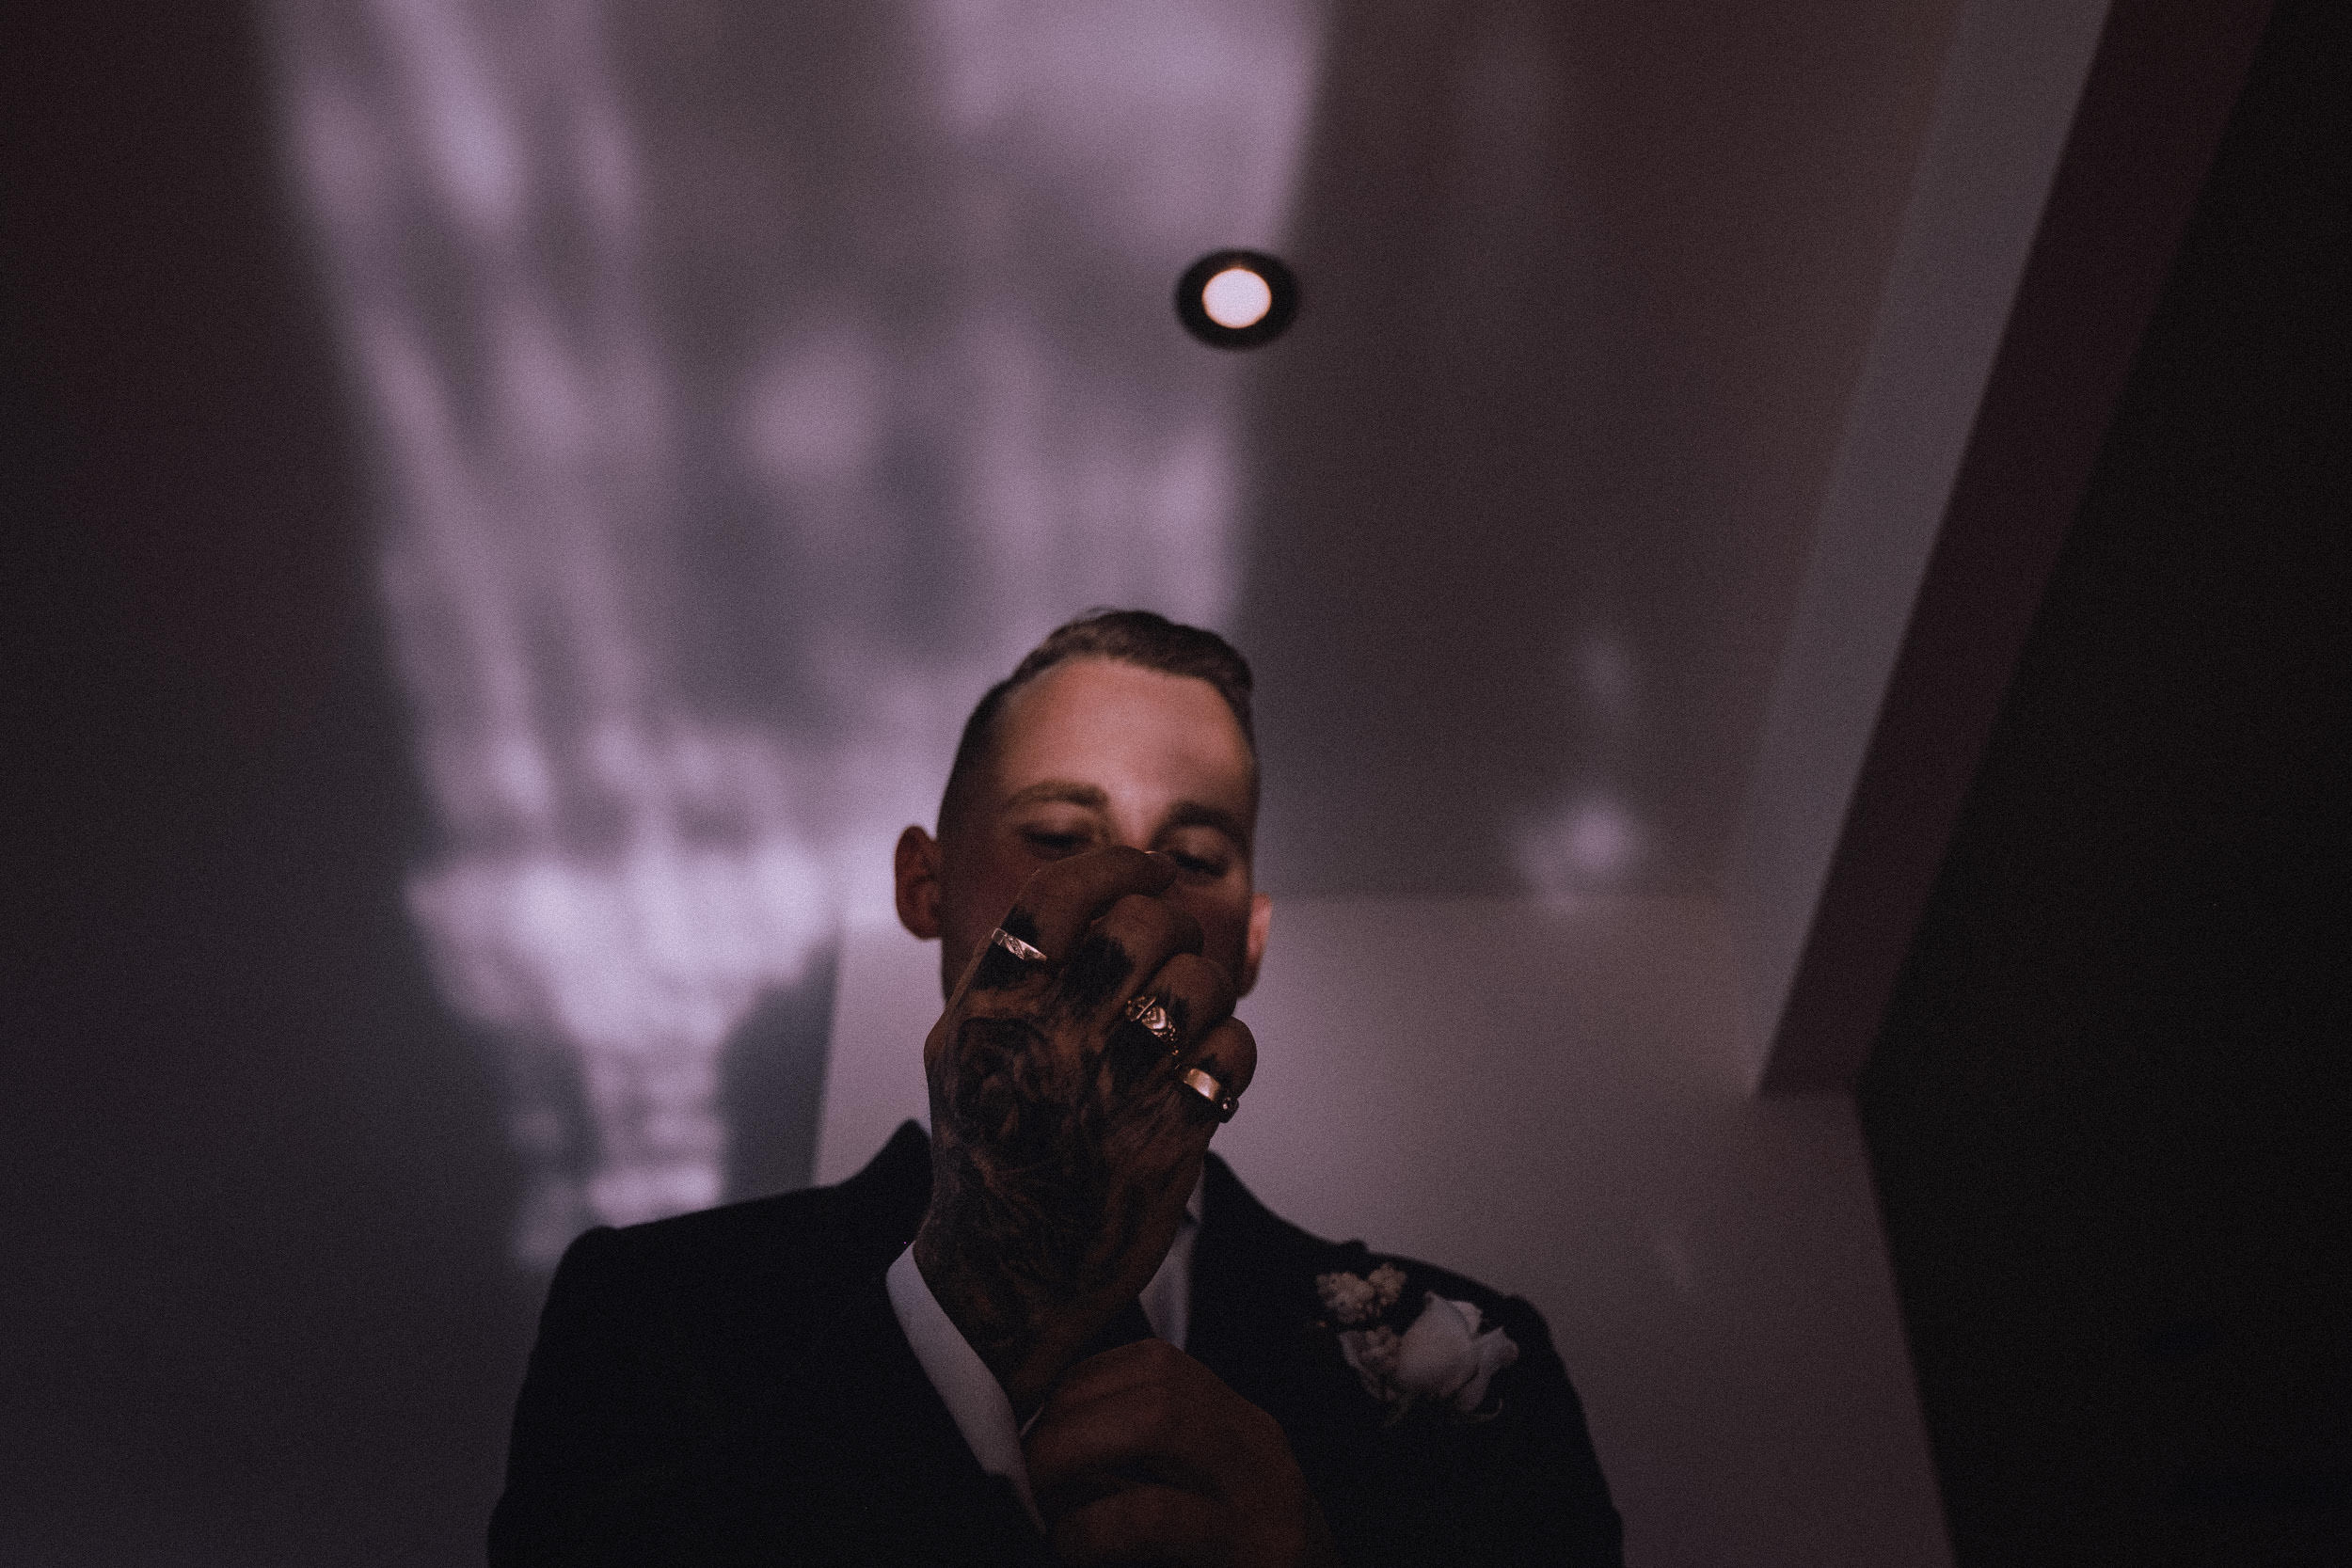 An artistic portrait of a groom preparing for his wedding